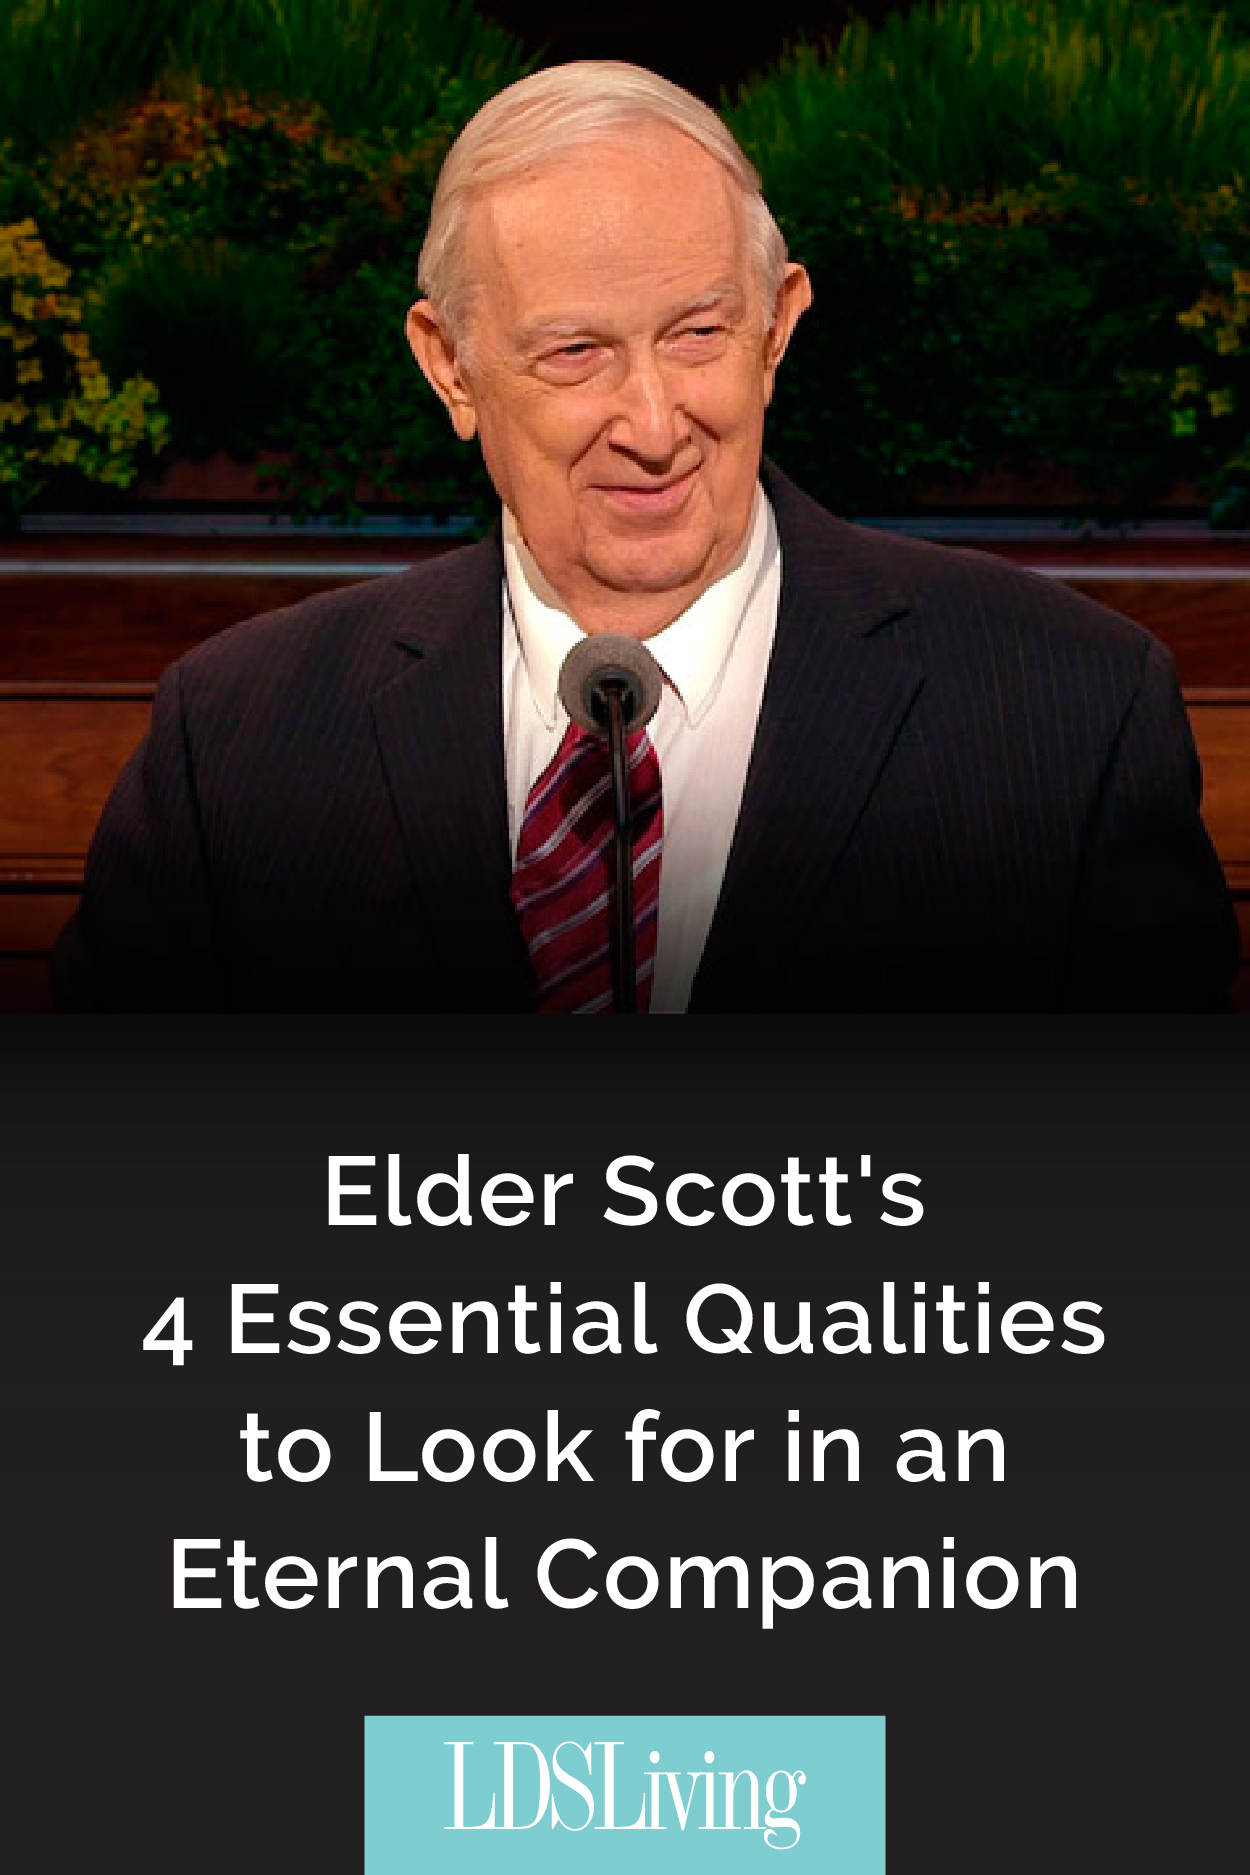 Elder Scott's 4 Essential Qualities to Look for in an Eternal Companion